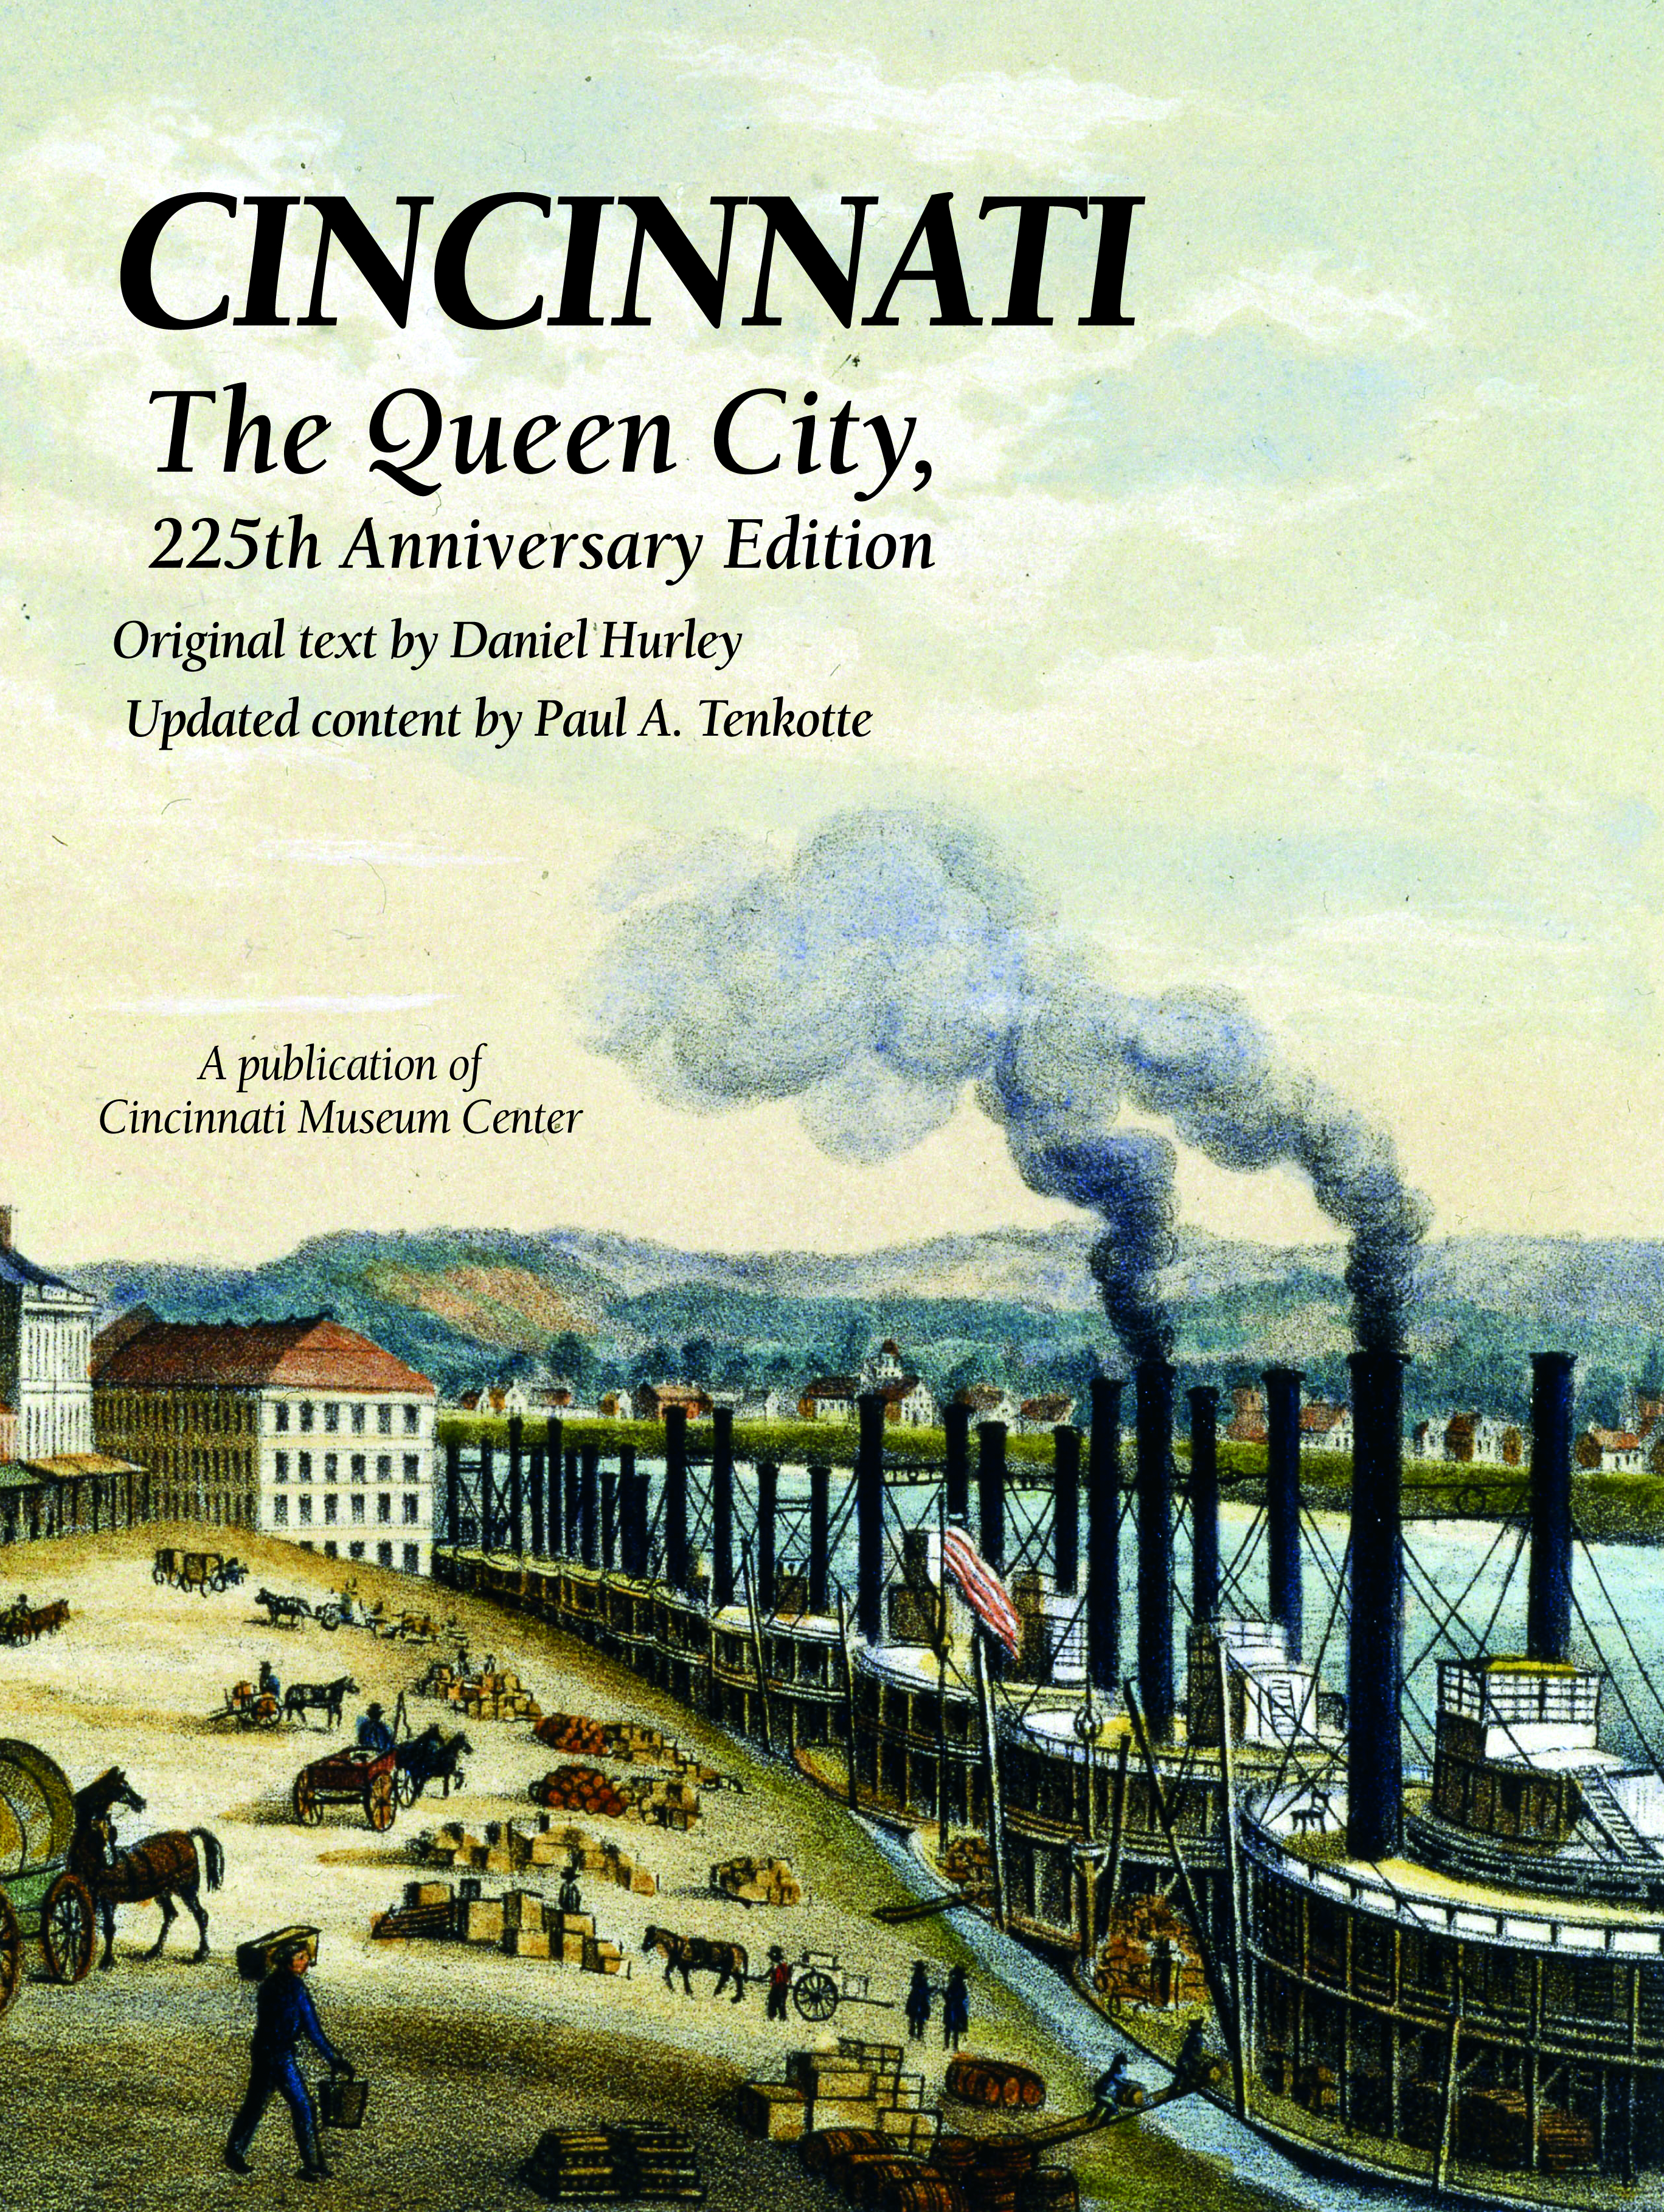 Cincinnati - The Queen City, 225th Anniversary Edition